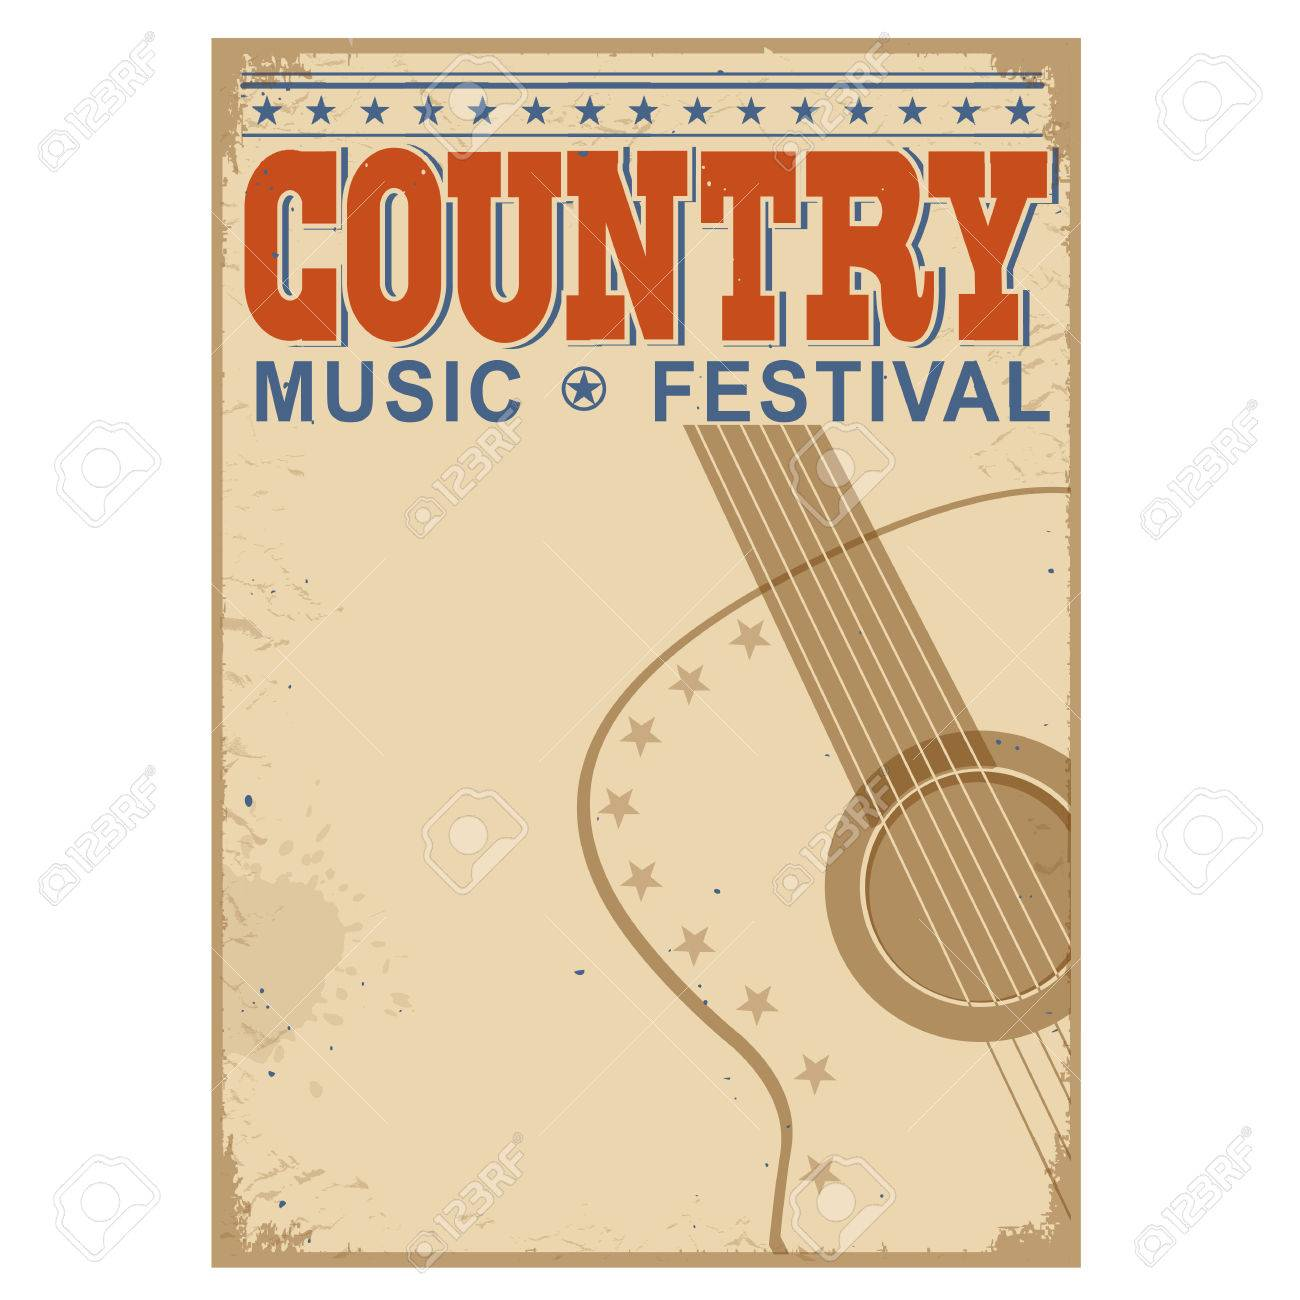 Country Music Festival Background With Symbol Of Guitarctor